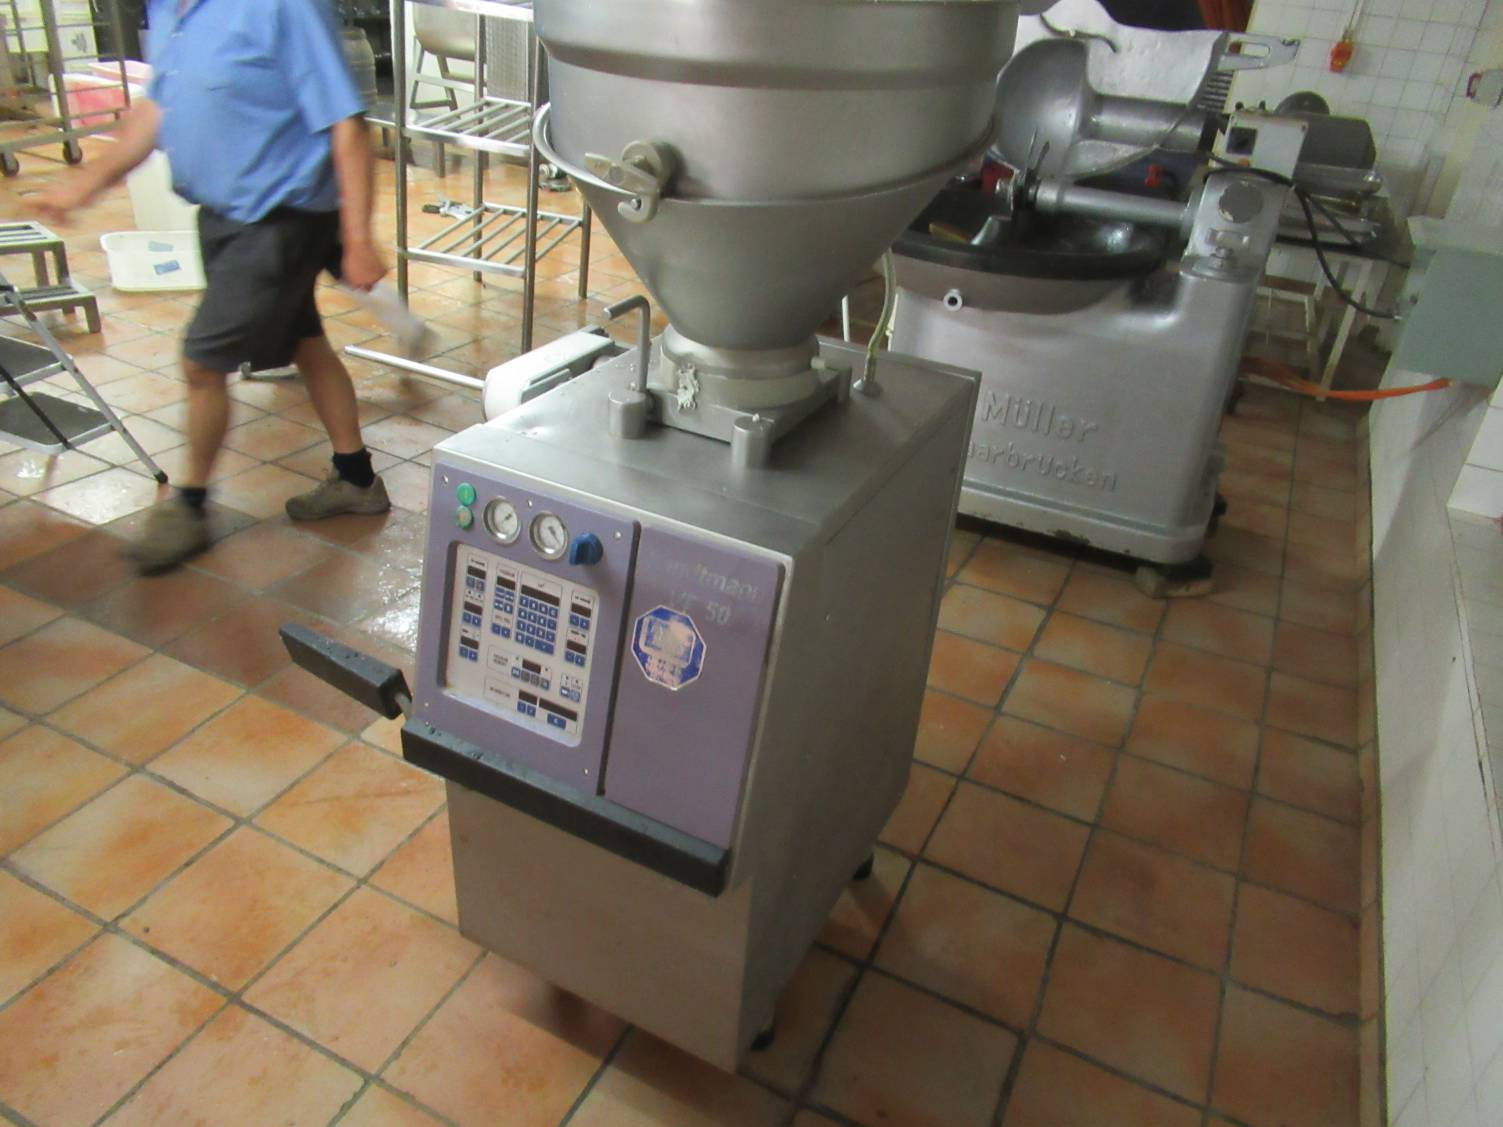 Handtmann VF50, Automatic - Butchery and Meat Processing Equipment in Virginia - Free State